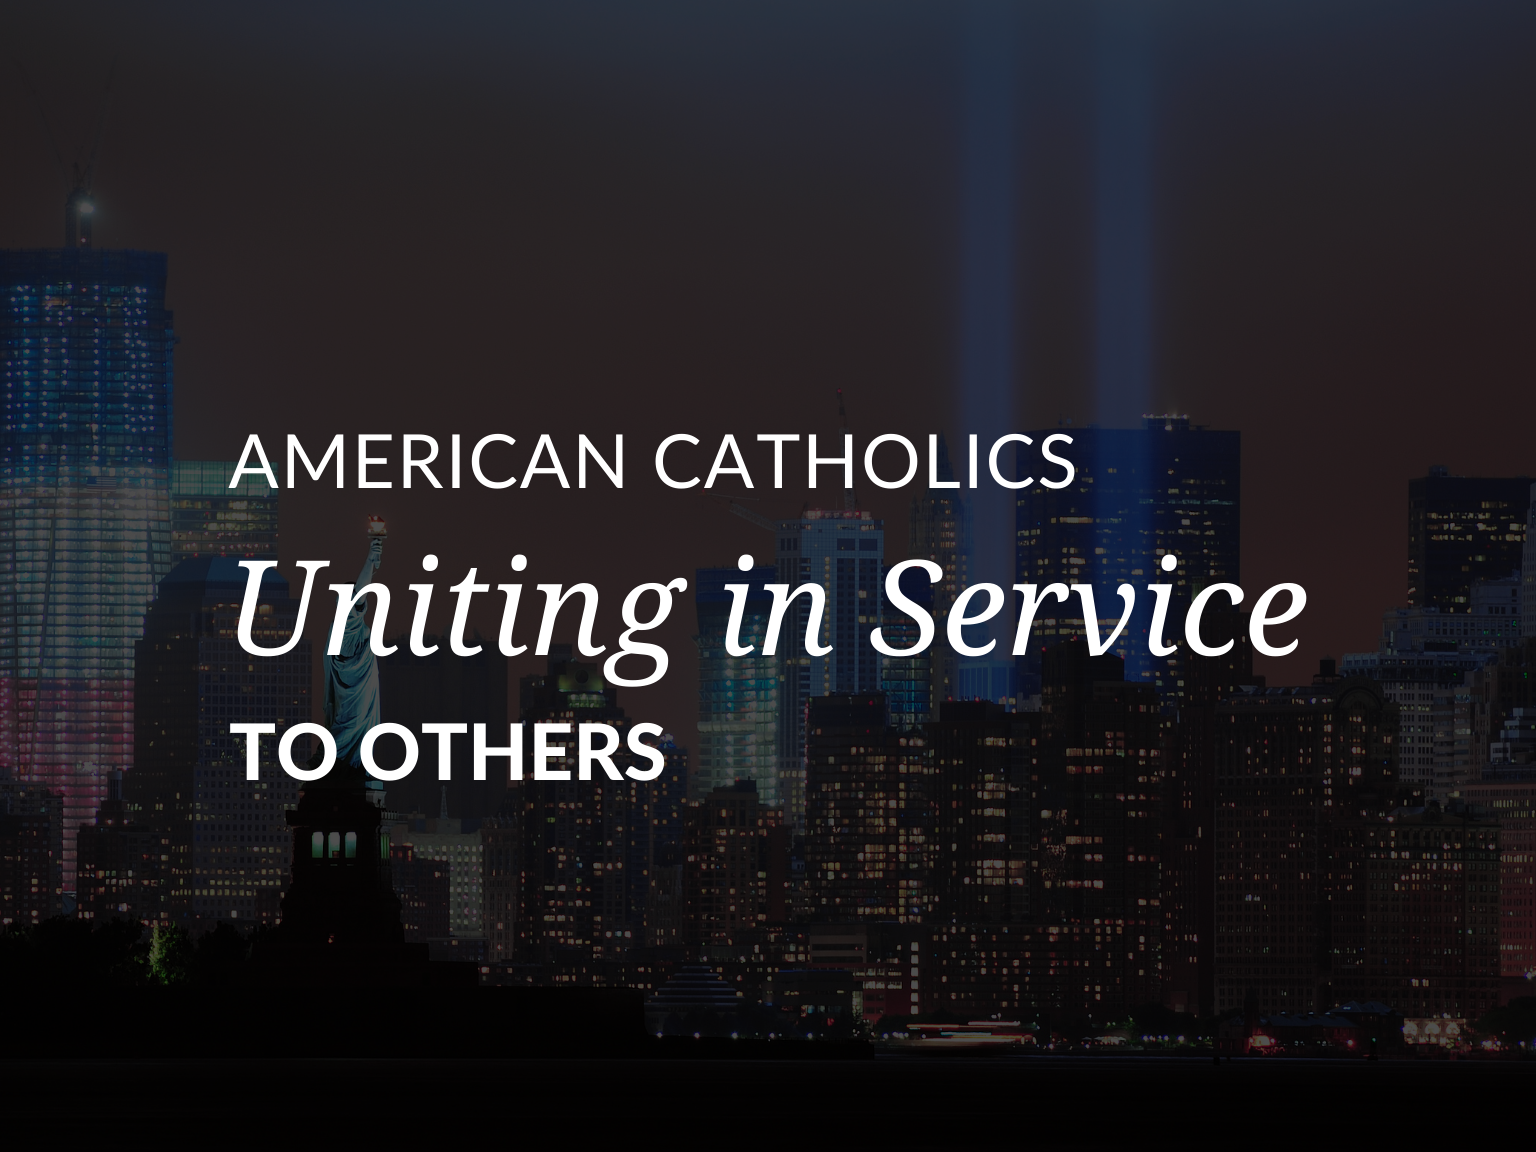 american-cathoics-uniting-in-service